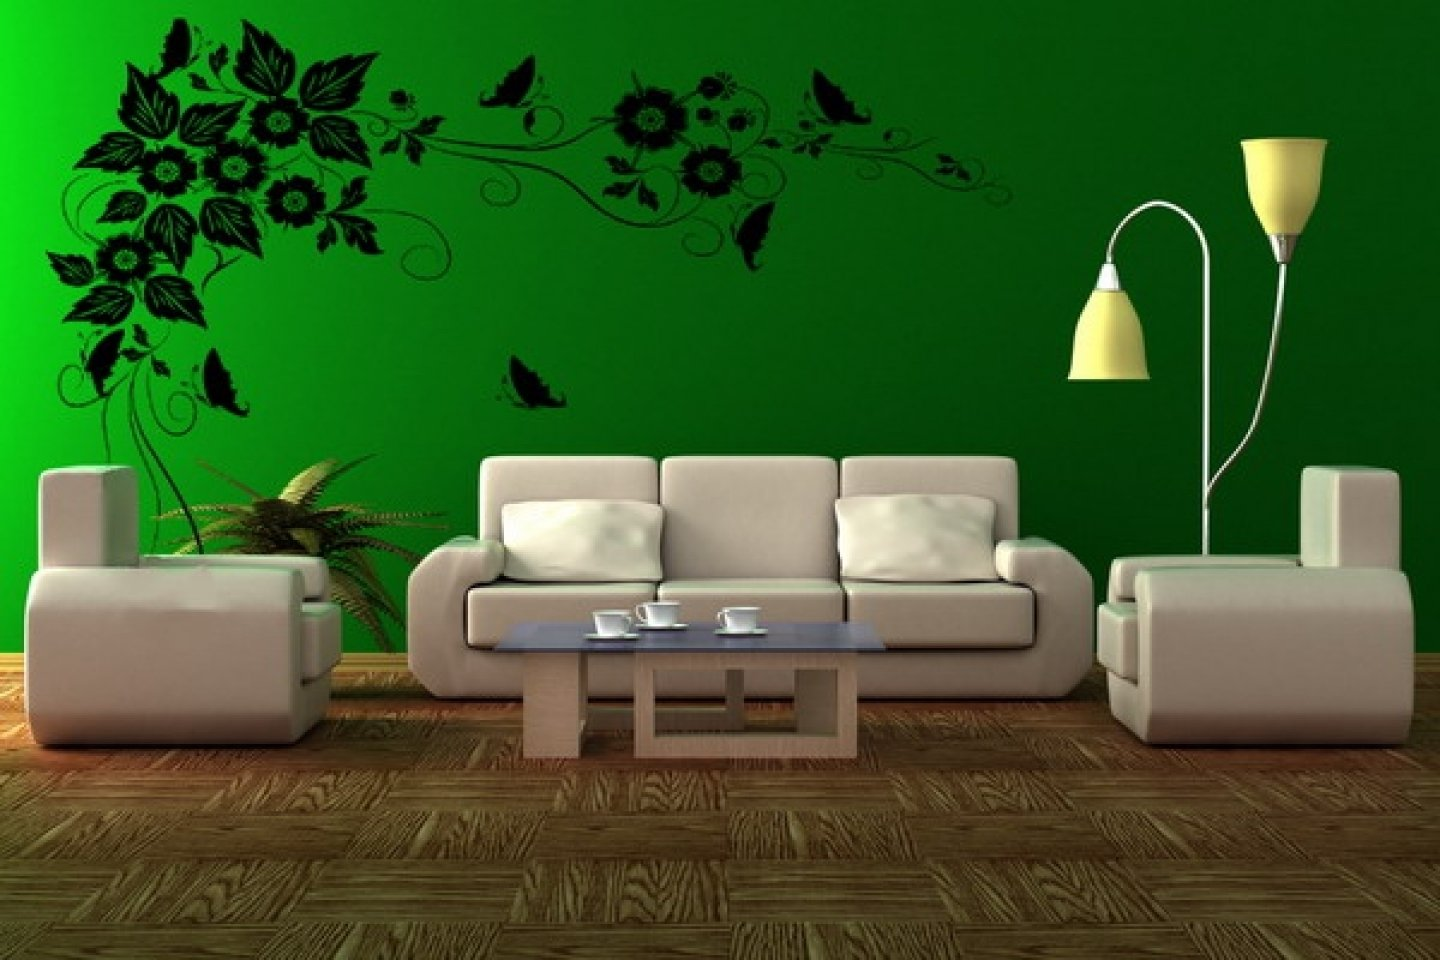 10 Stunning Wall Painting Ideas For Bedroom decorative wall painting painting in dubai wallpaintingdubai ae 2020